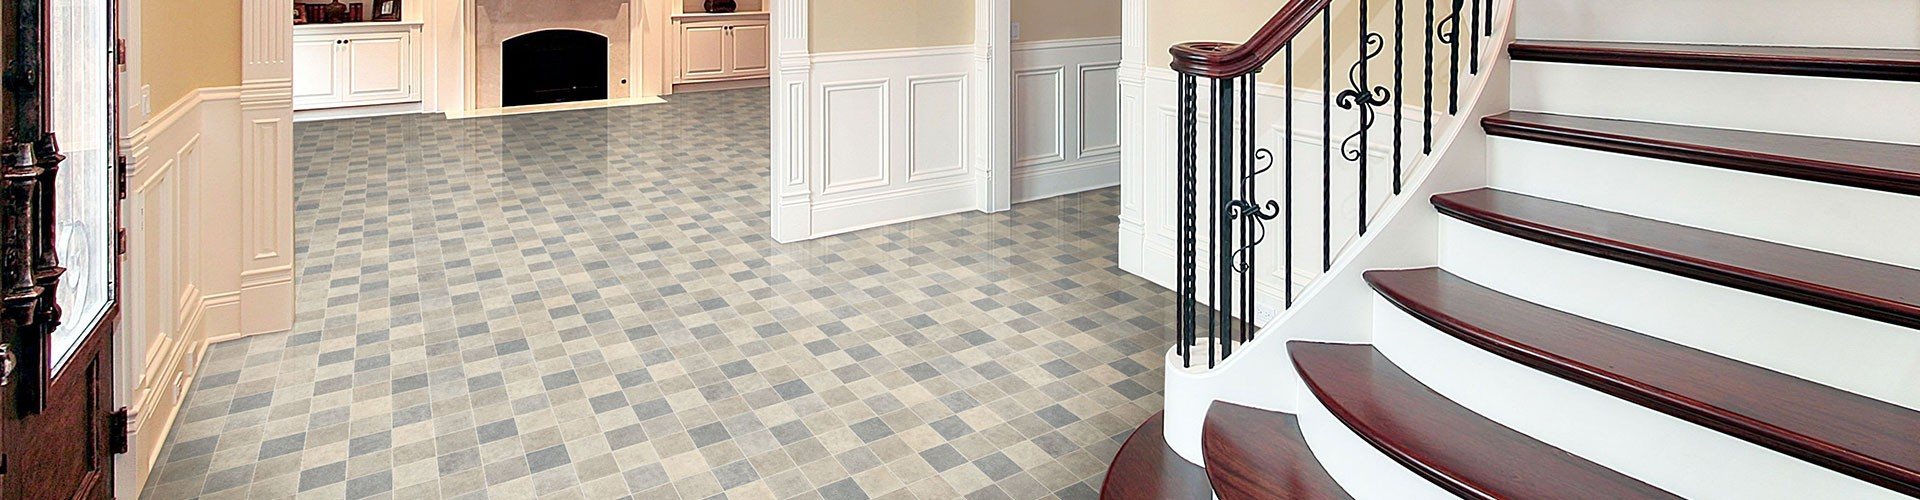 Tough Vinyl Flooring